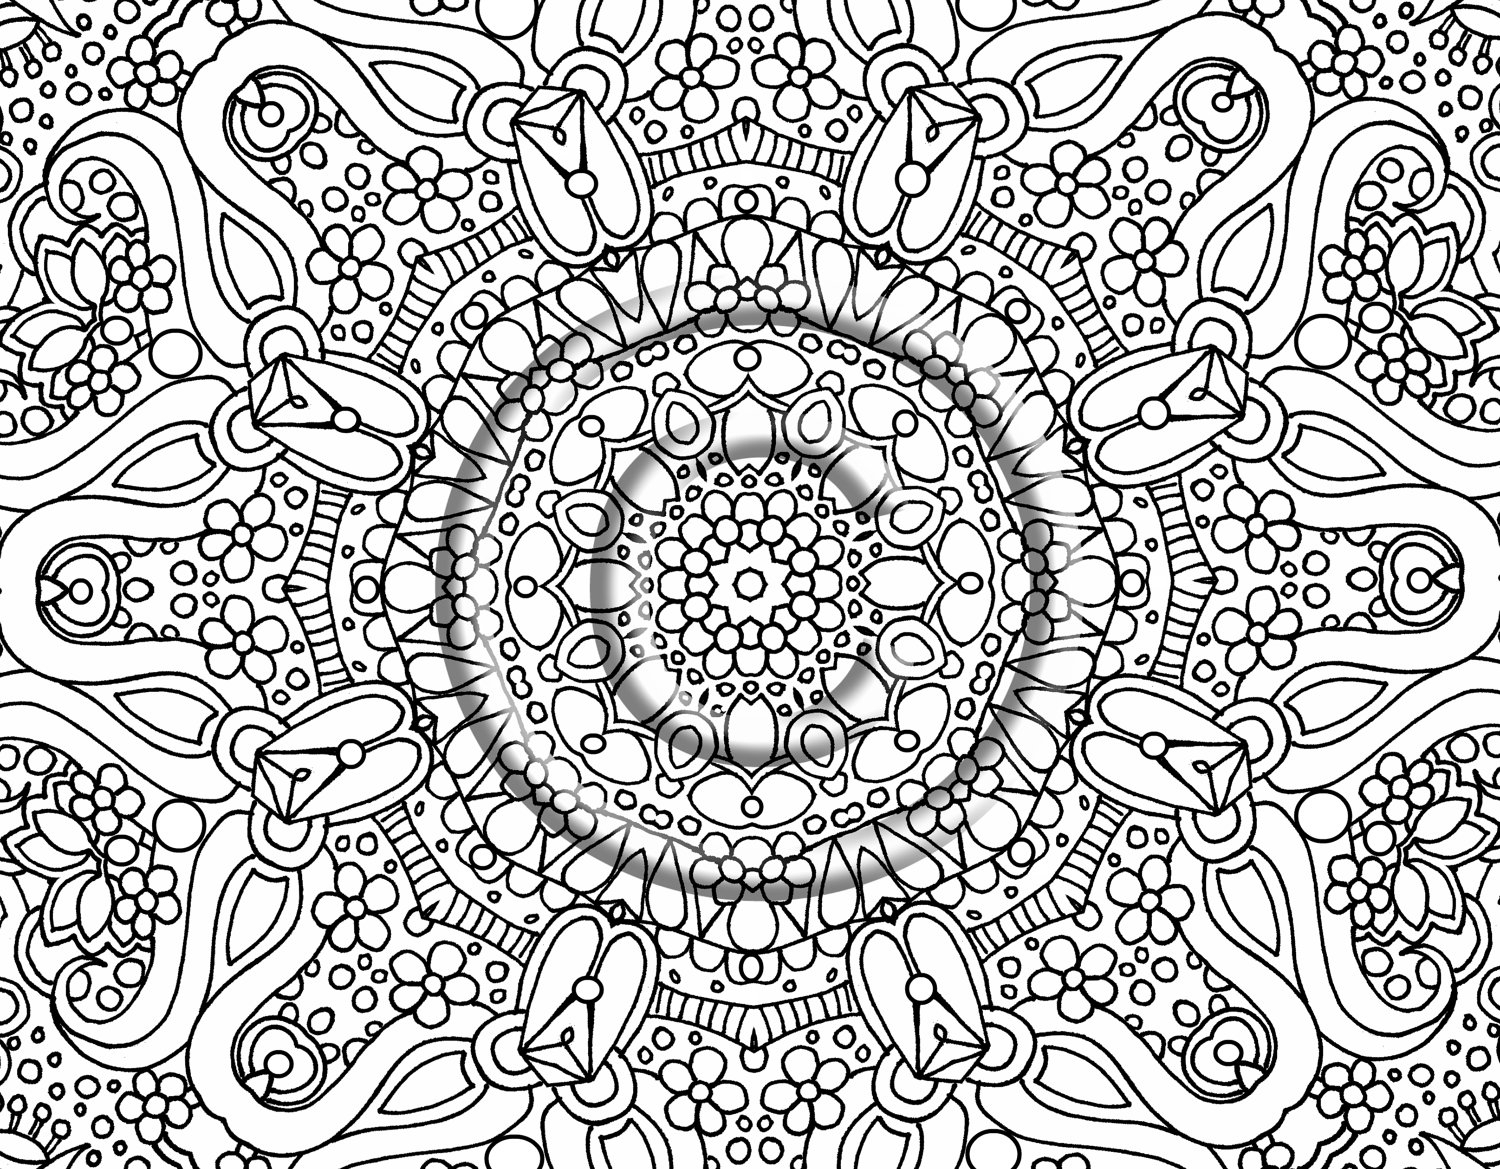 1500x1169 Fresh Hard Coloring Pages To Print Free Coloring Pages Download